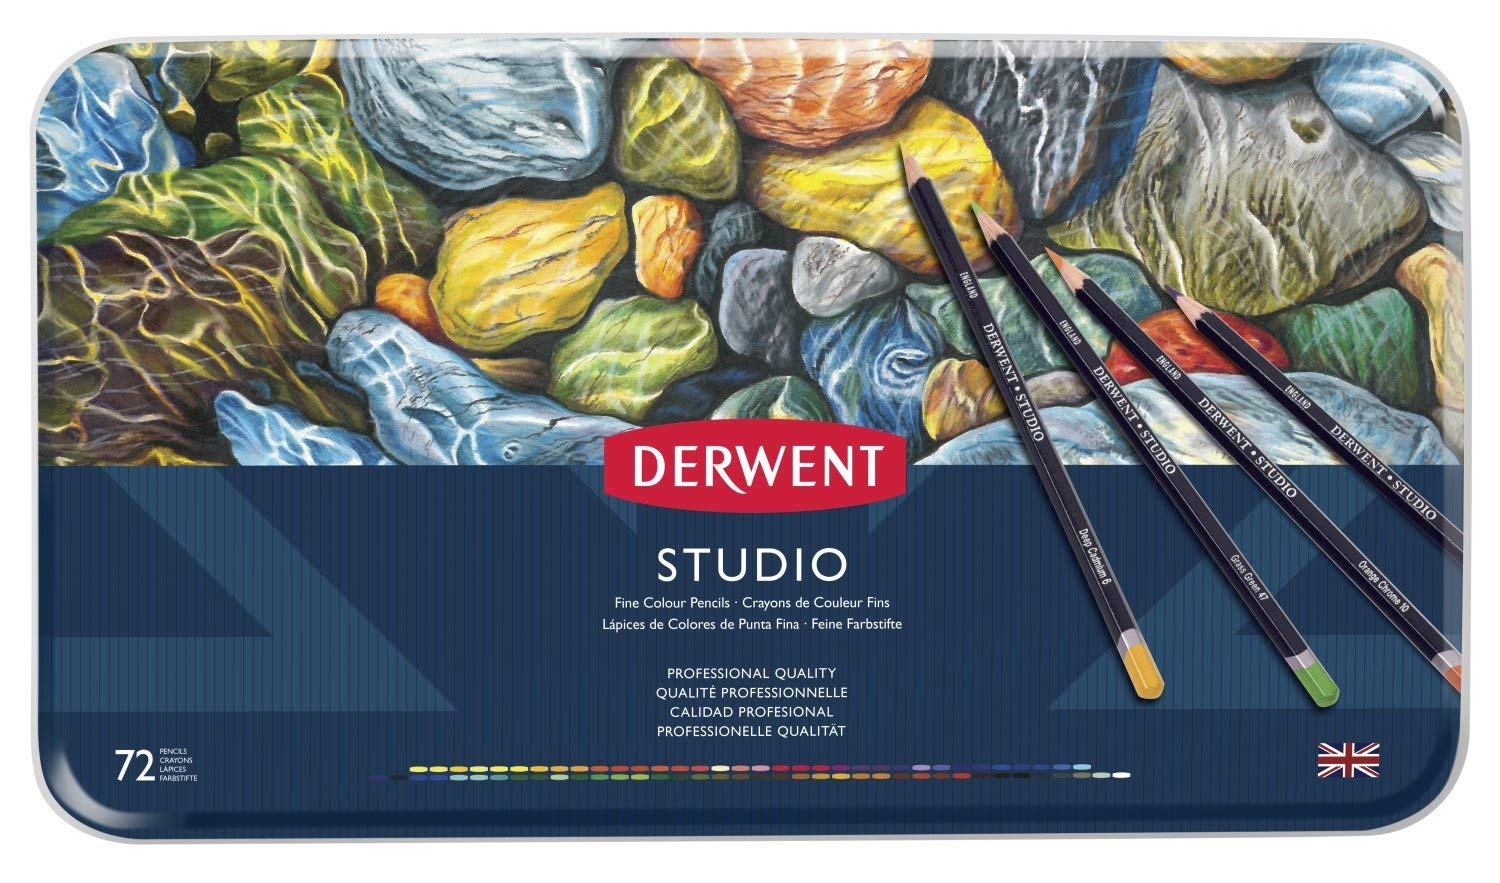 Derwent Studio Colored Pencils, 3.4mm Core, Metal Tin, 72 Count (32201) by Derwent